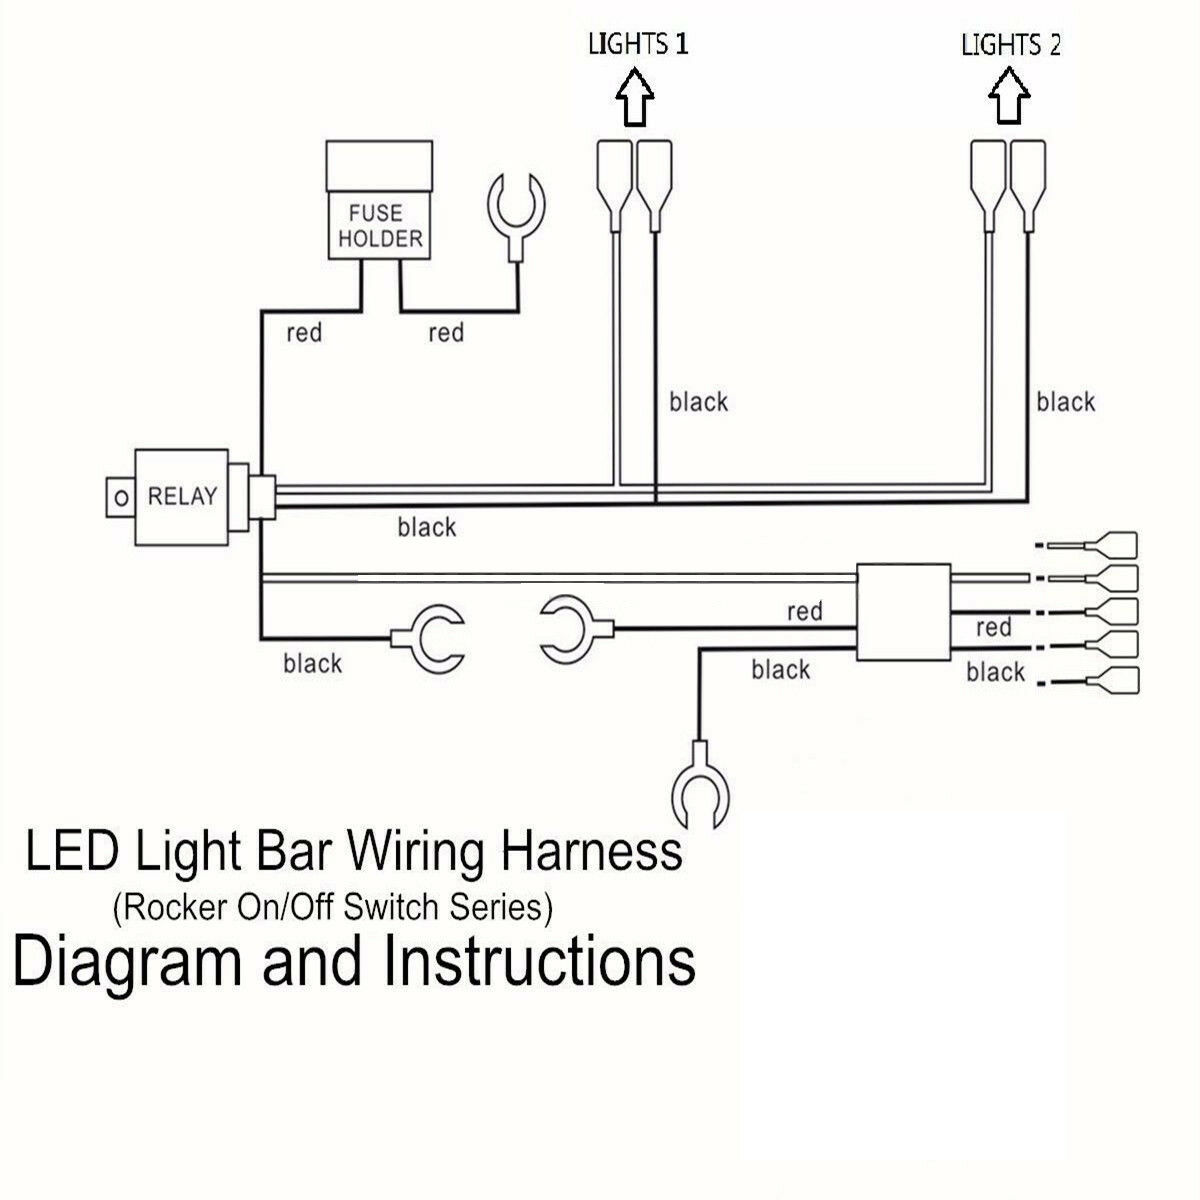 5 pin relay wiring diagram spotlights electronics mini projects with circuit 12v led work light bar harness kit loom control 2 norton secured powered by verisign